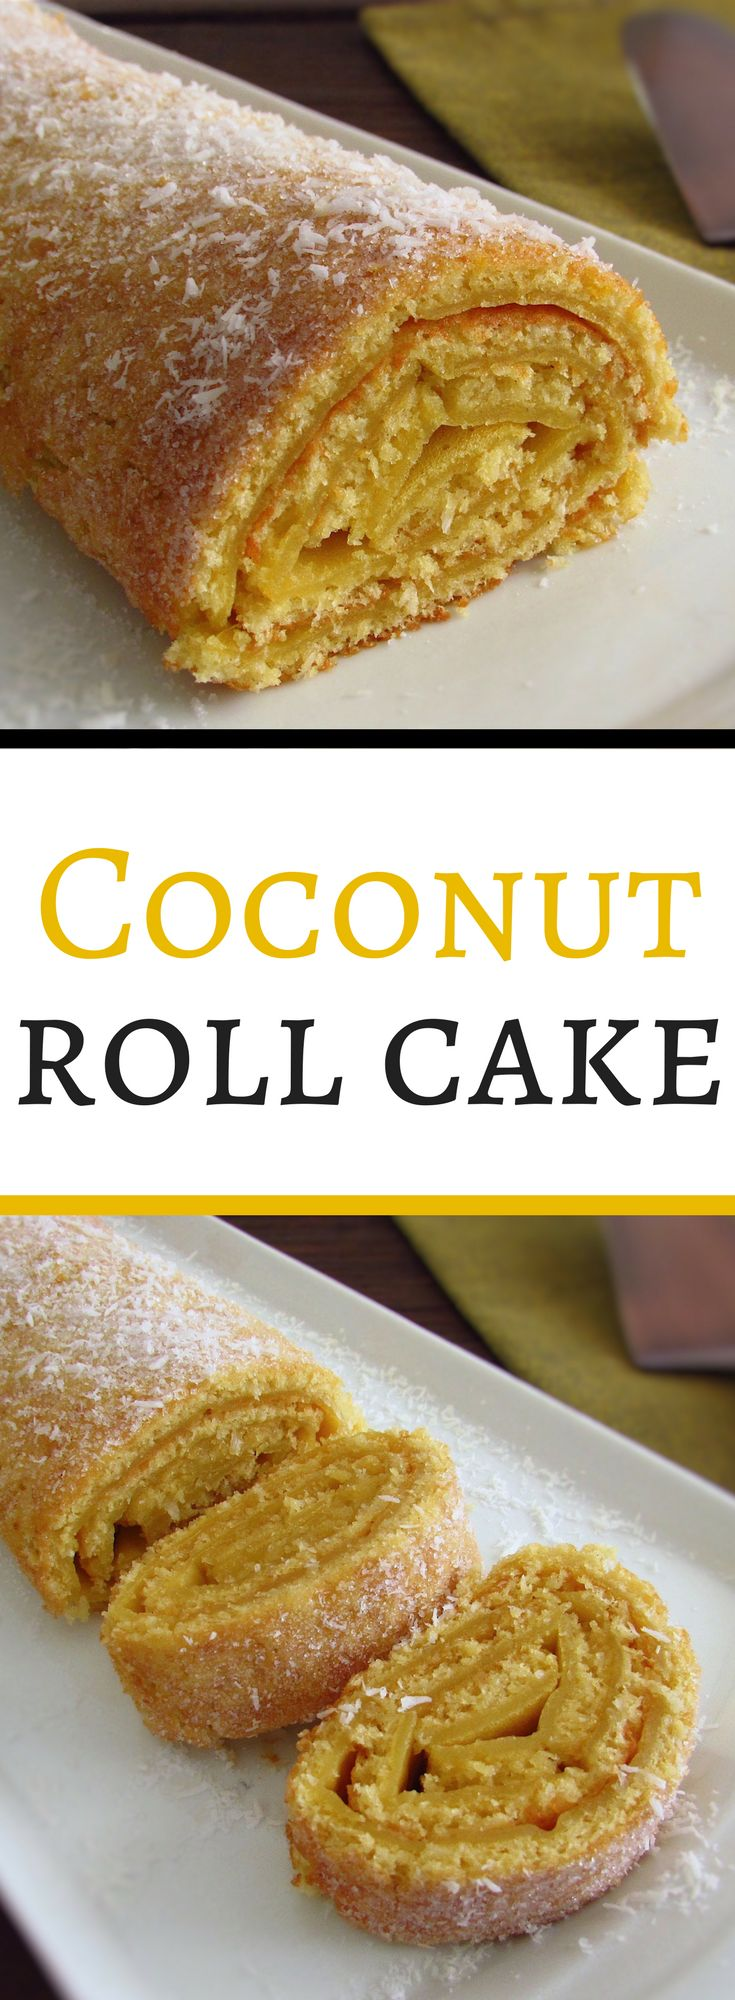 Coconut roll cake | Food From Portugal. Love the coconut taste and want a different cake? Try this coconut roll cake recipe, have excellent presentation and is very tasty. #coconut #cake #recipe